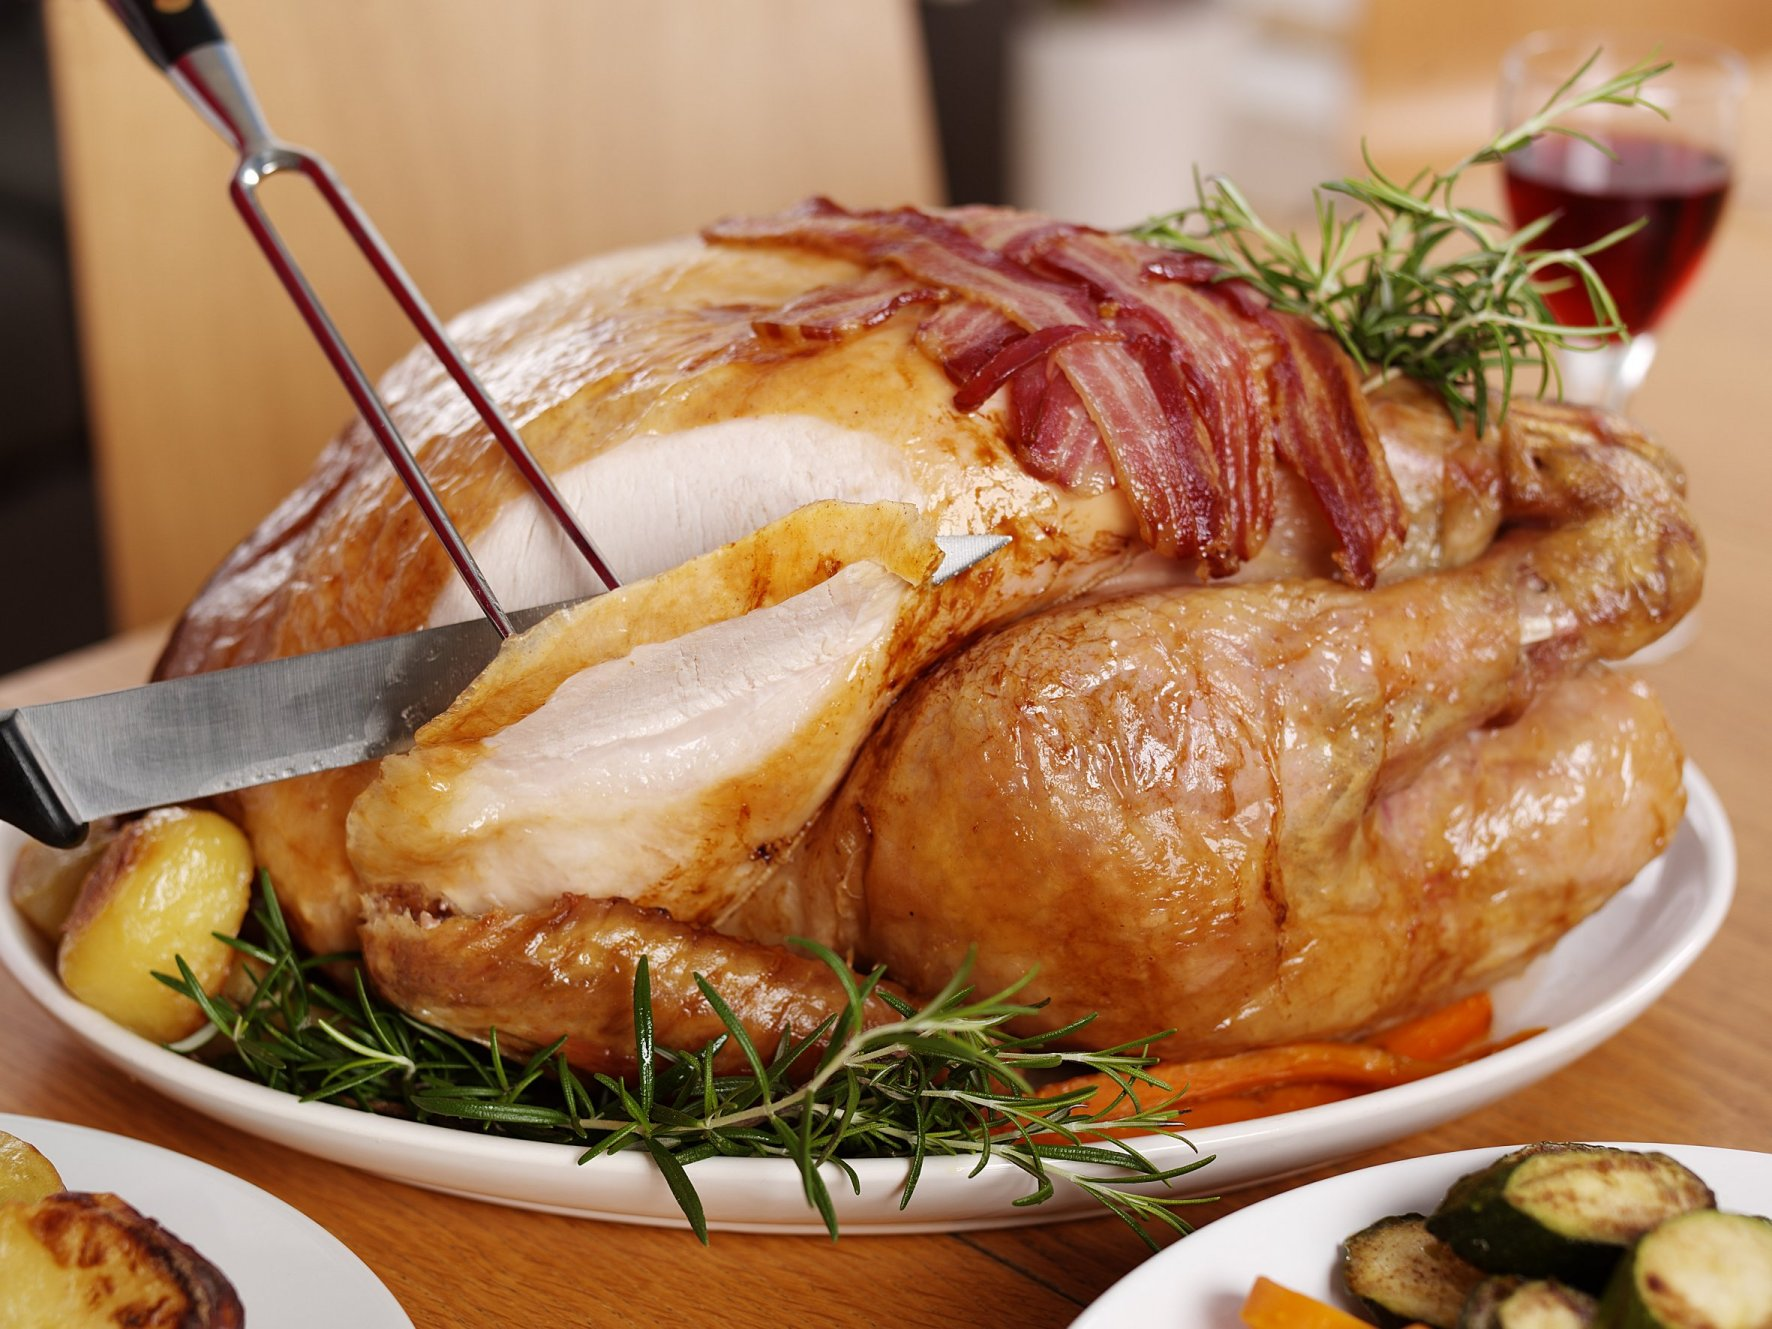 46 Million Turkey dinners are expected to be served on Thanksgiving. But cooking is only half the battle. The taste can take a turkey turn downward if you don't slice your bird the right way.